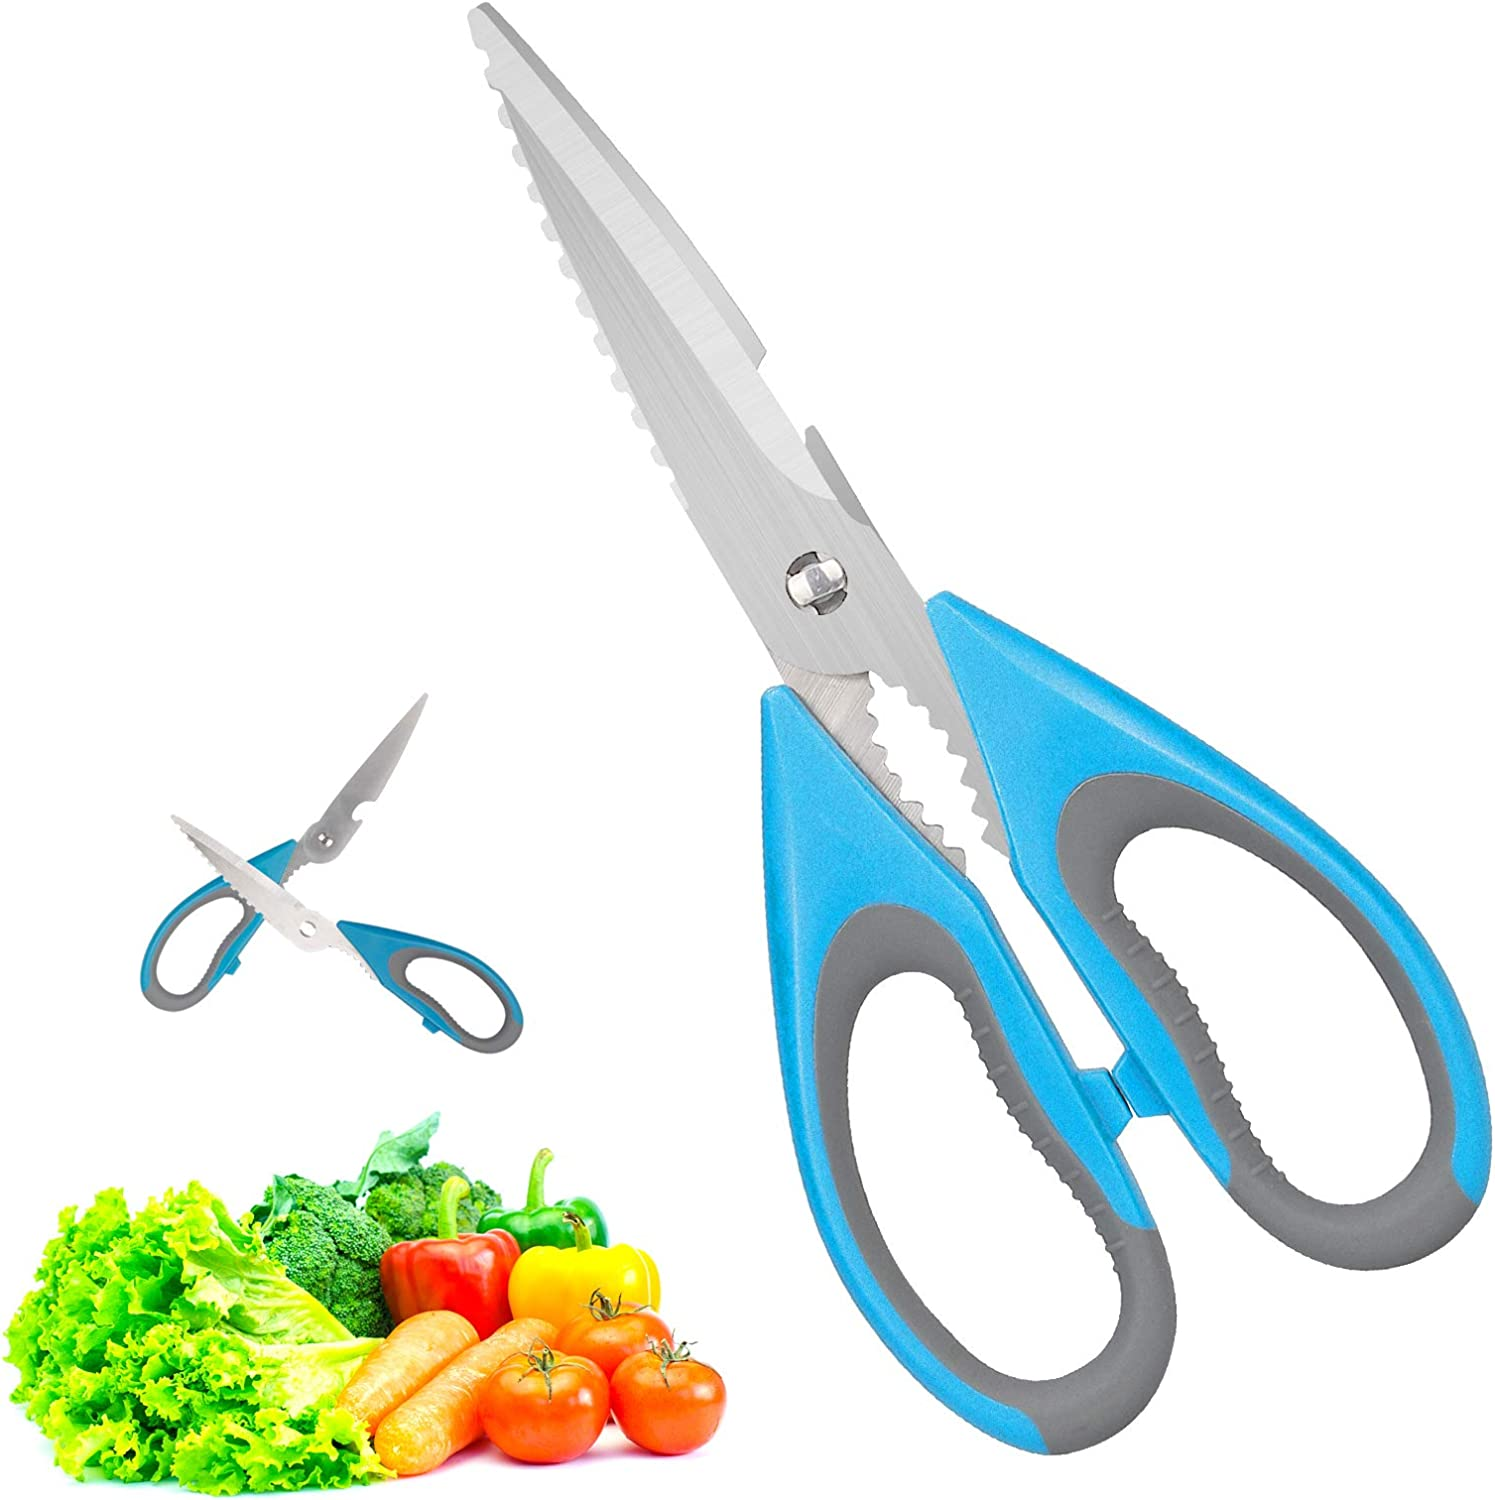 Kitchen Shears,Stainless-Steel Multi-Purpose Heavy-Duty Scissors Safe Utility Scissors for Cutting Chicken, Poultry, Seafood, Meat, Vegetables, Herbs, Food - Sharp Blades